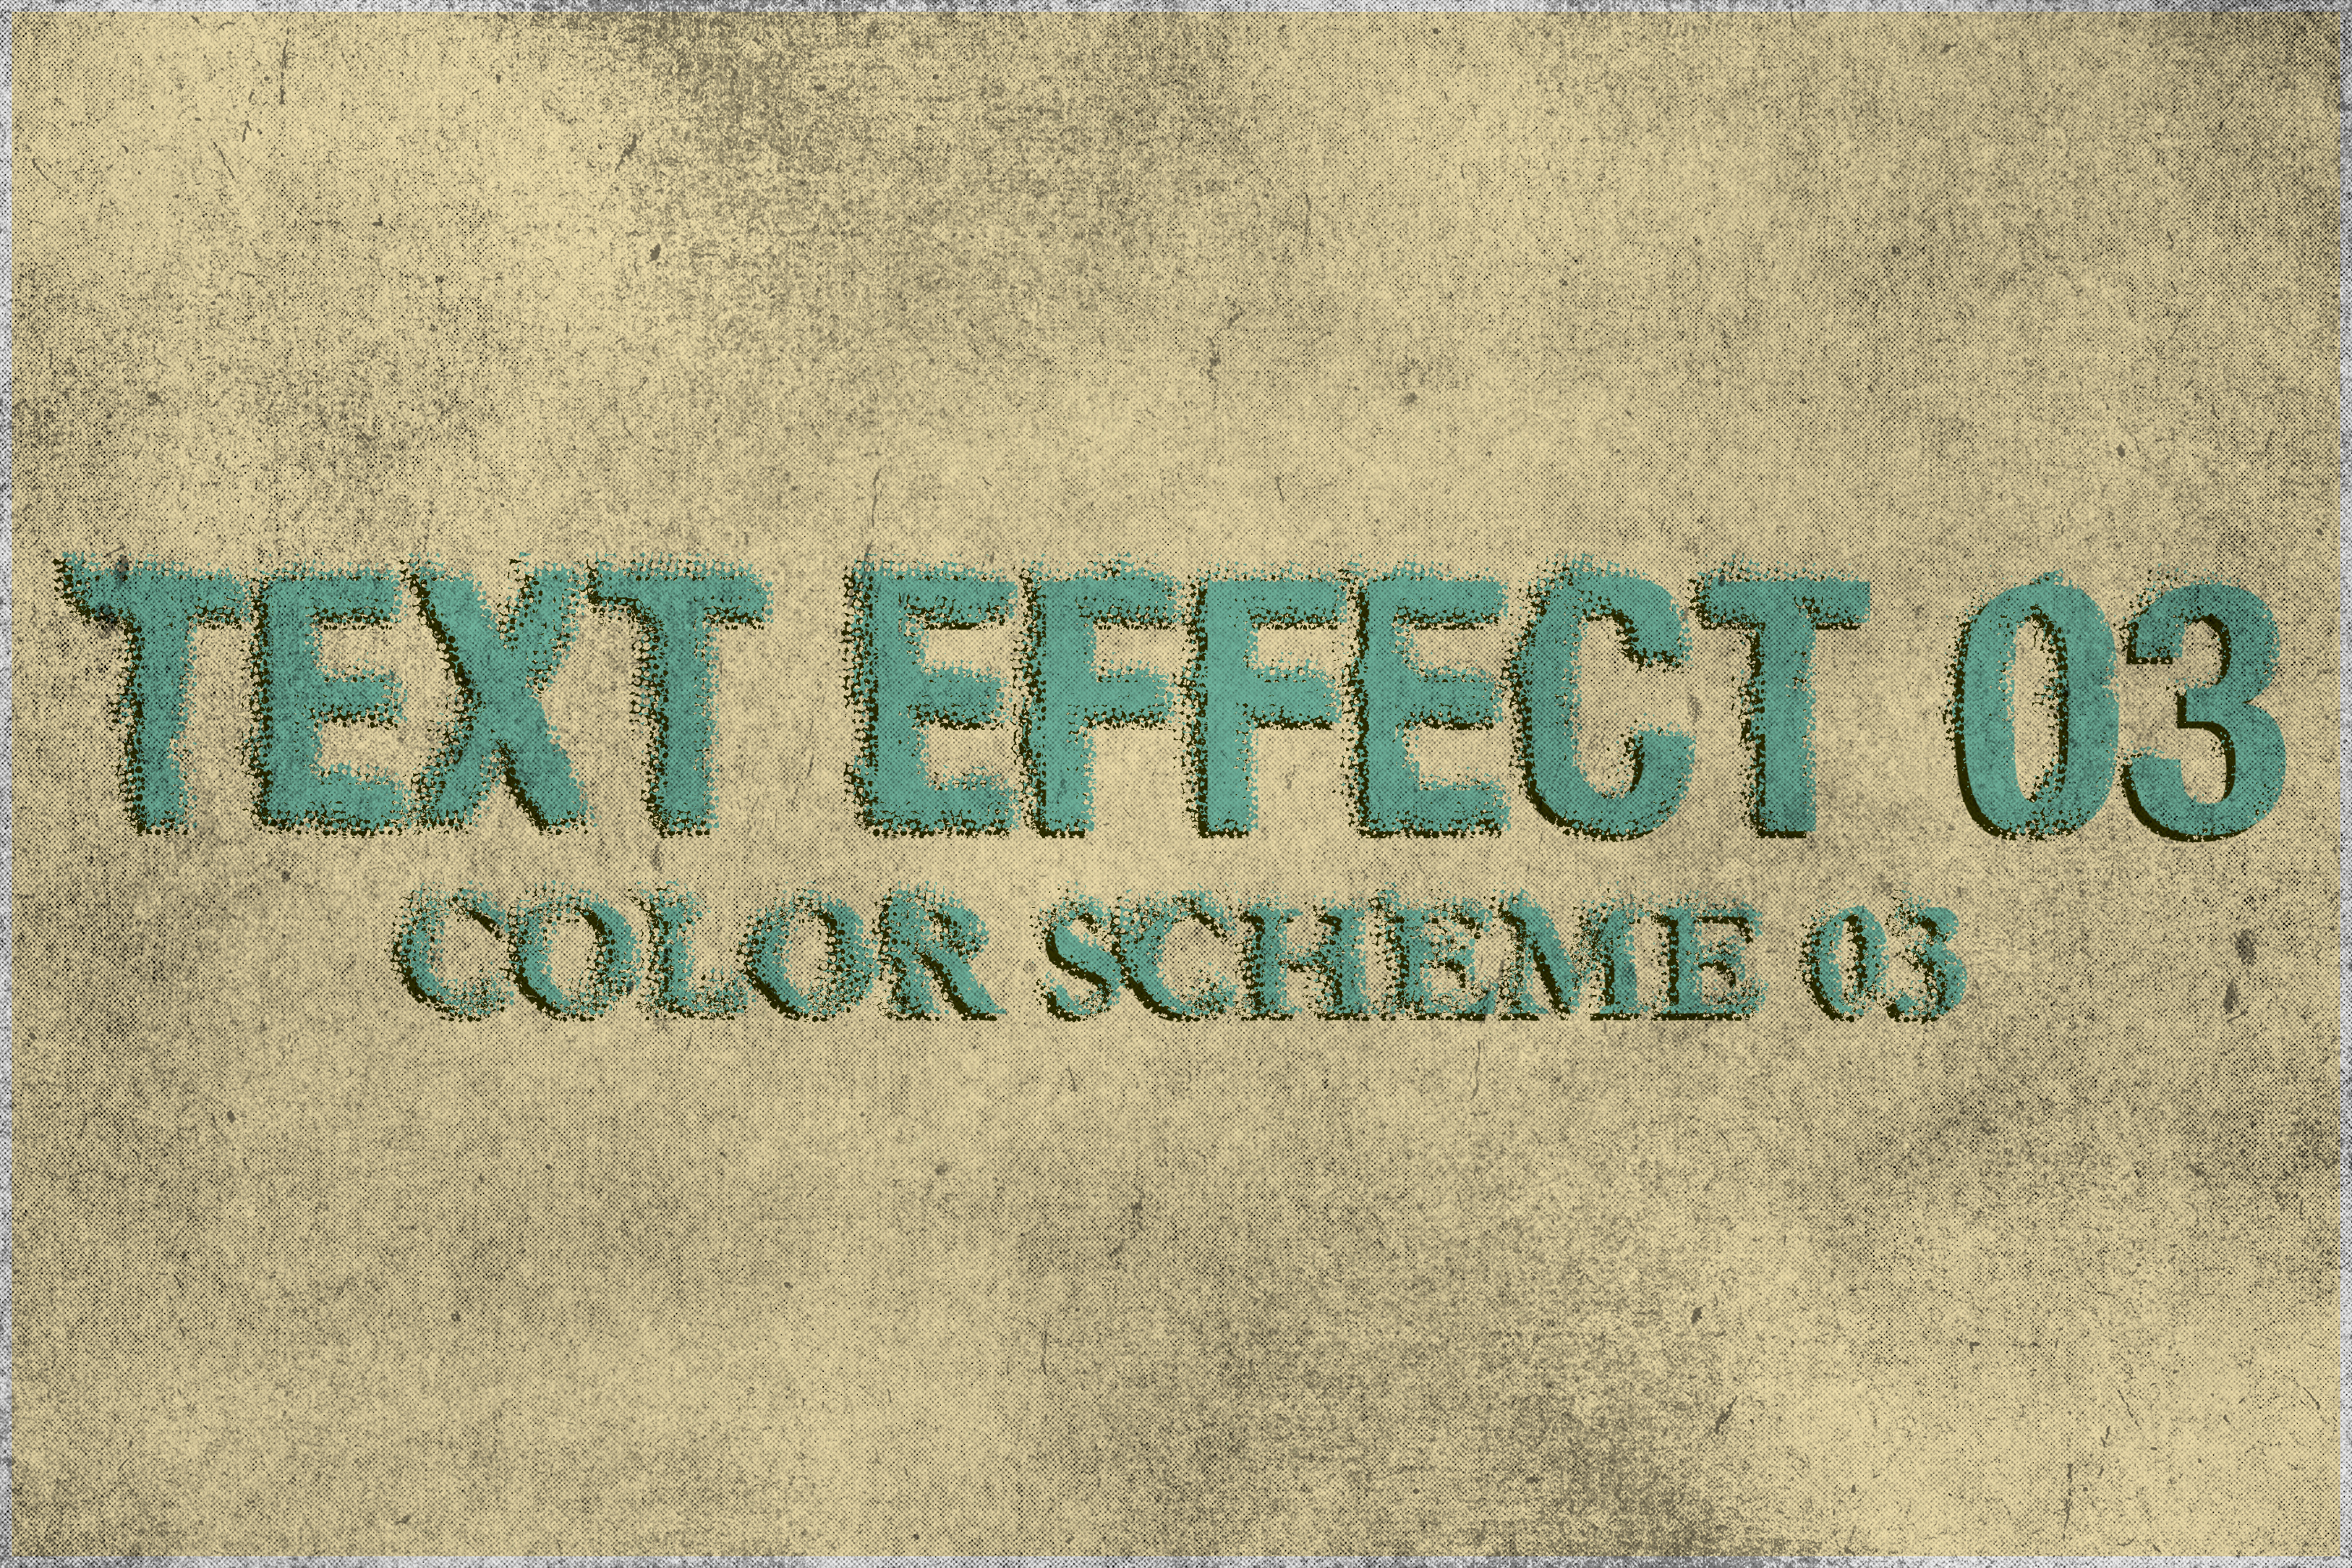 Corrosion - Vintage Text Effect example image 4